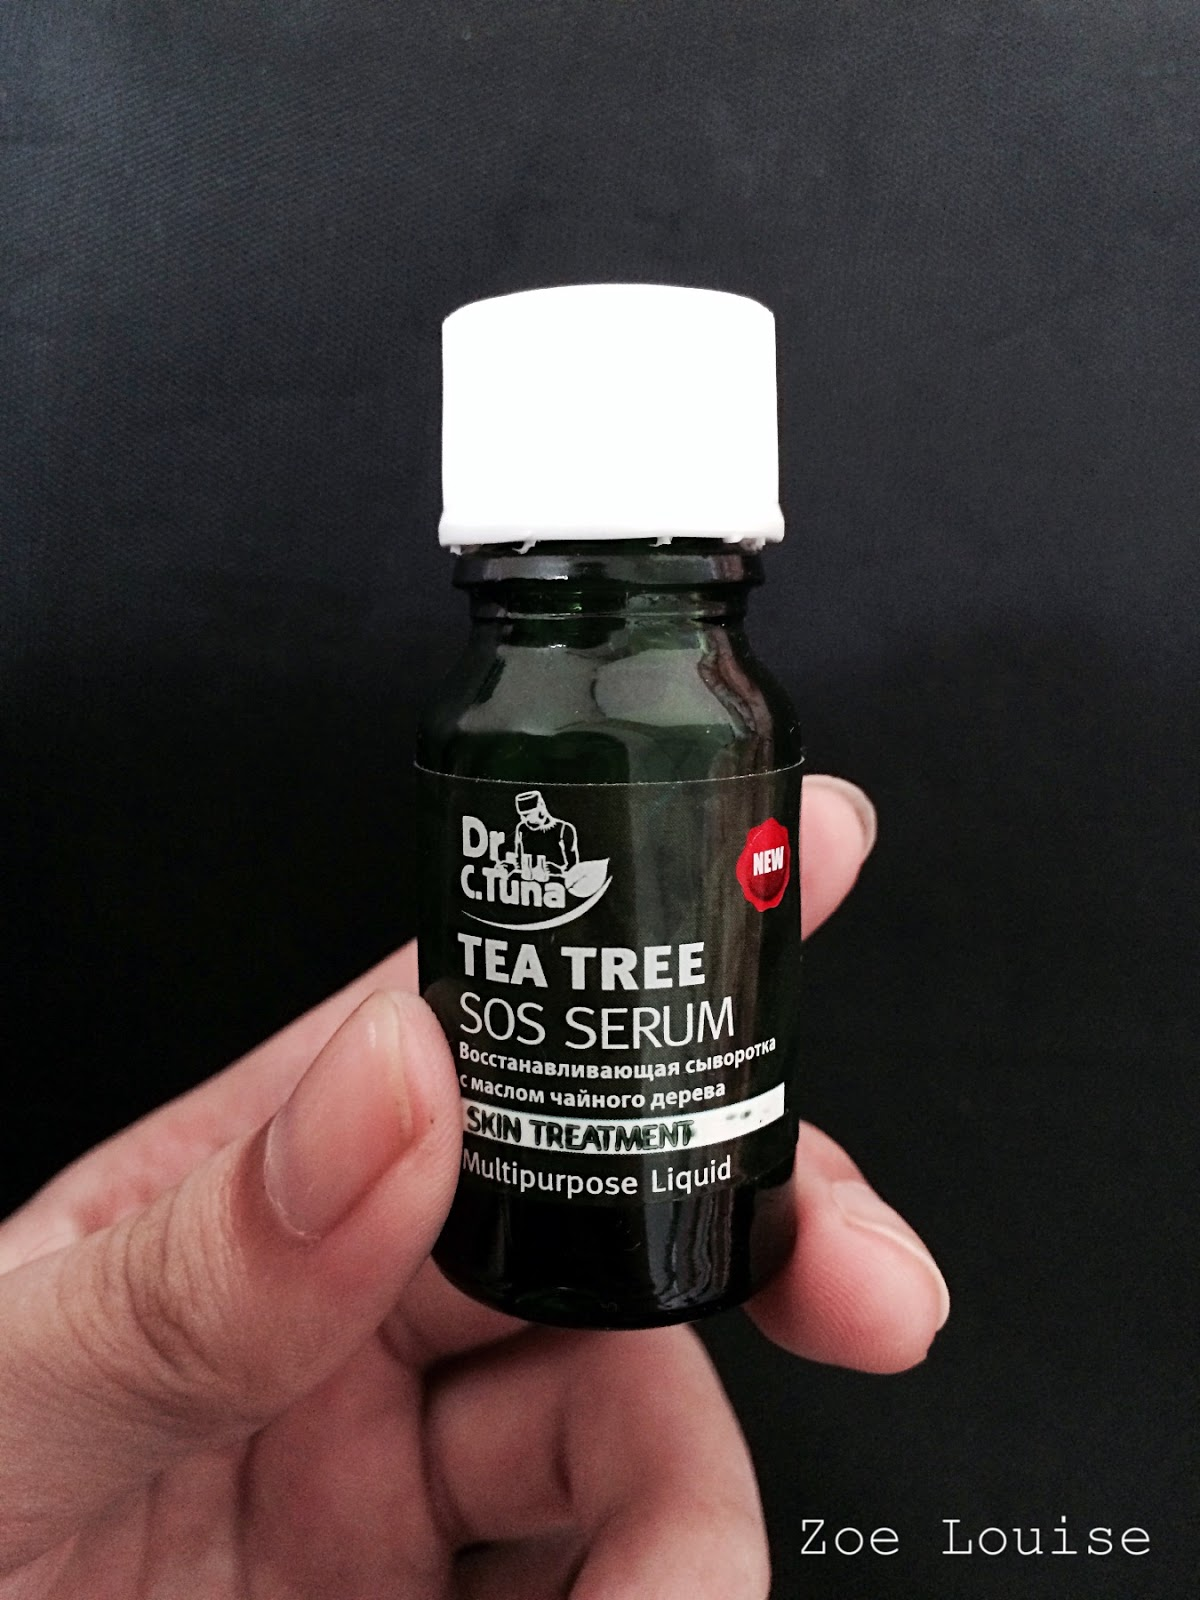 Review Farmasi Dr C Tuna Tea Tree Sos Serum Heythereitszoe Pure Pimple Cream Acne Care I Have Not Search For Its Price On Amazon Yet But Think It Is Pretty Cheap A High Quality Treatment Like This Uh Huh